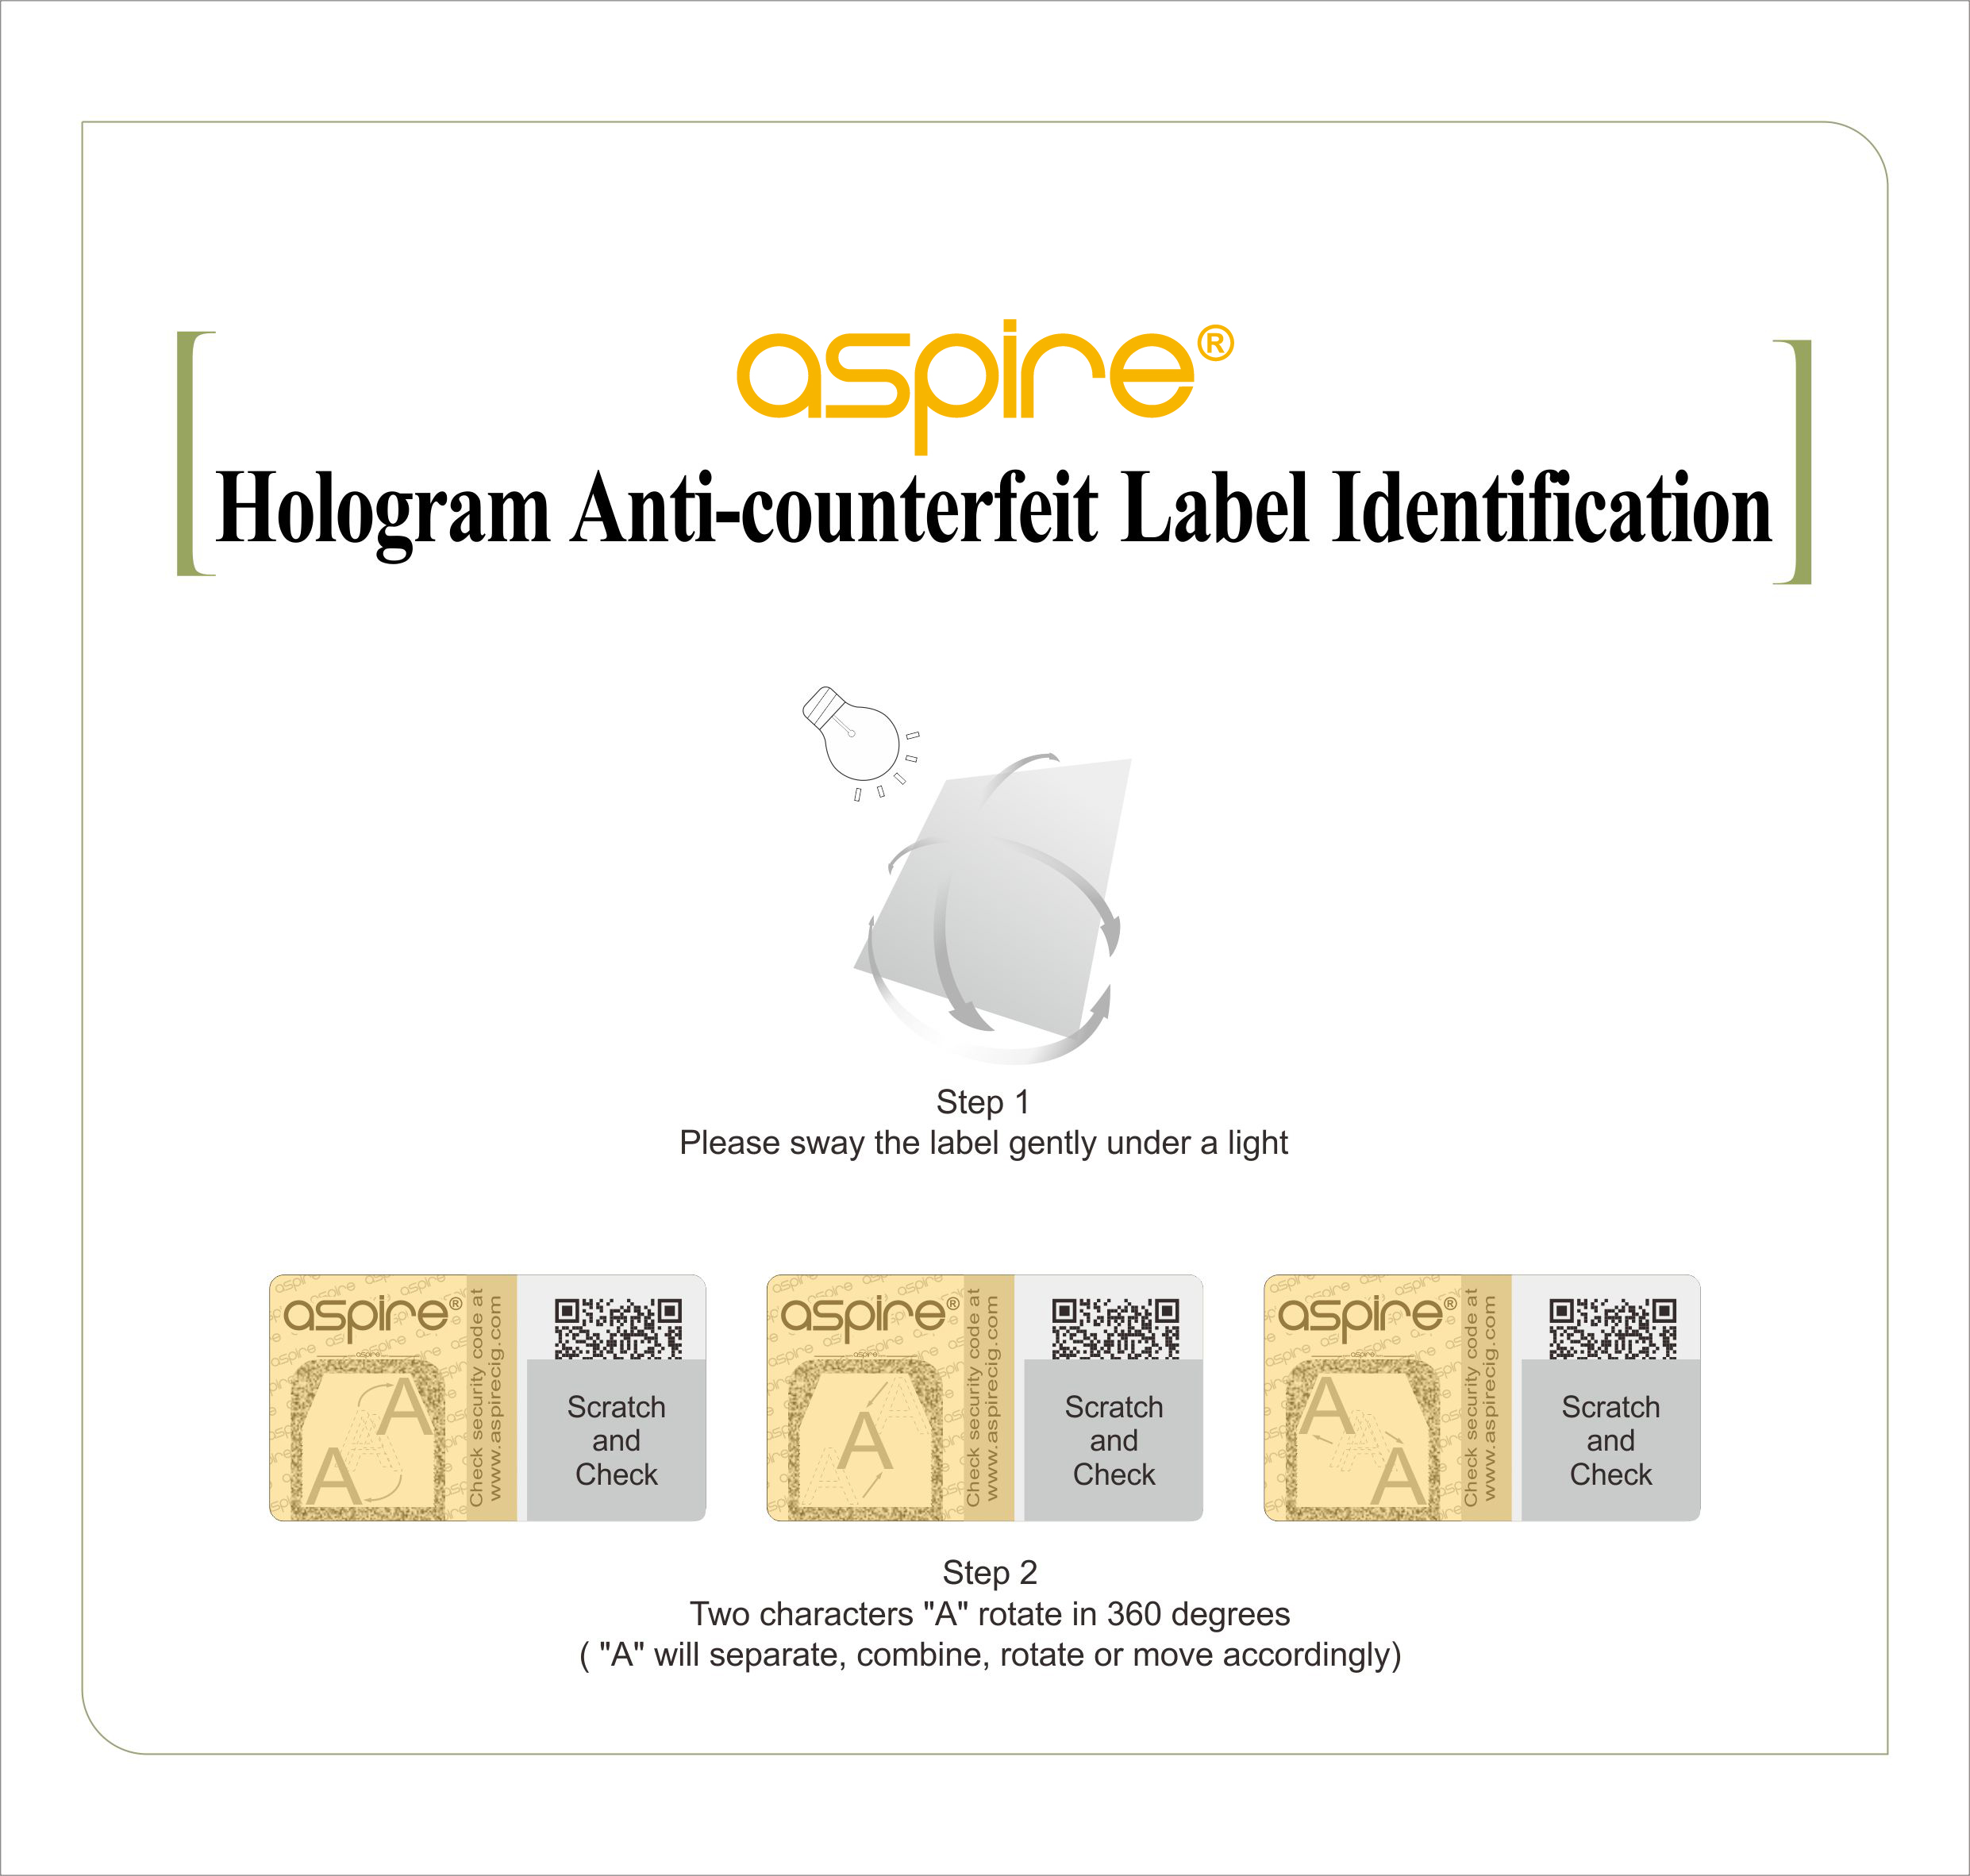 aspire hologram anti-counterfeit label identification